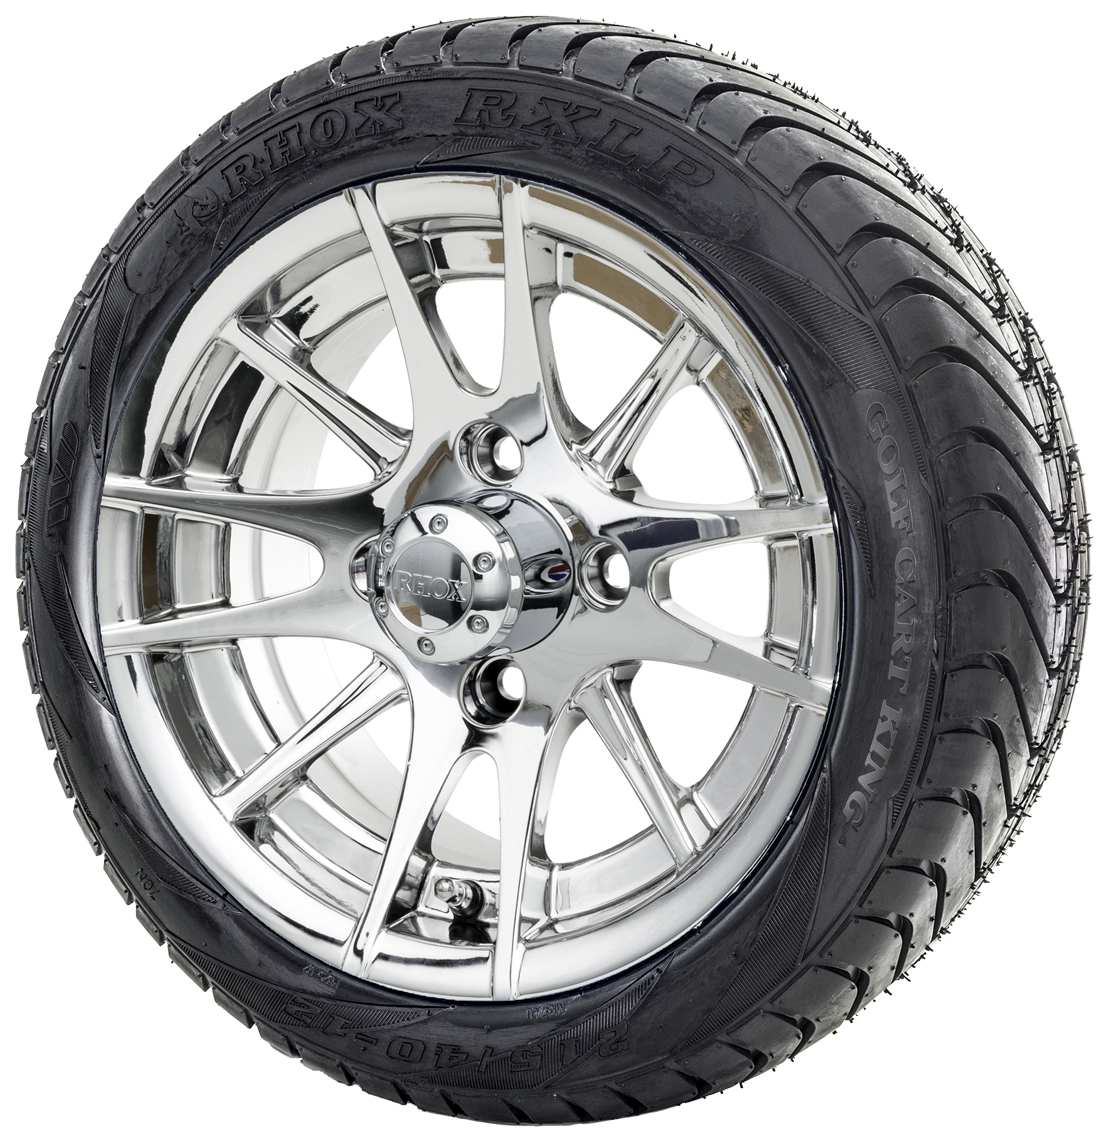 "12"" RHOX RX107 Chrome Golf Cart Wheels and Low Profile ..."